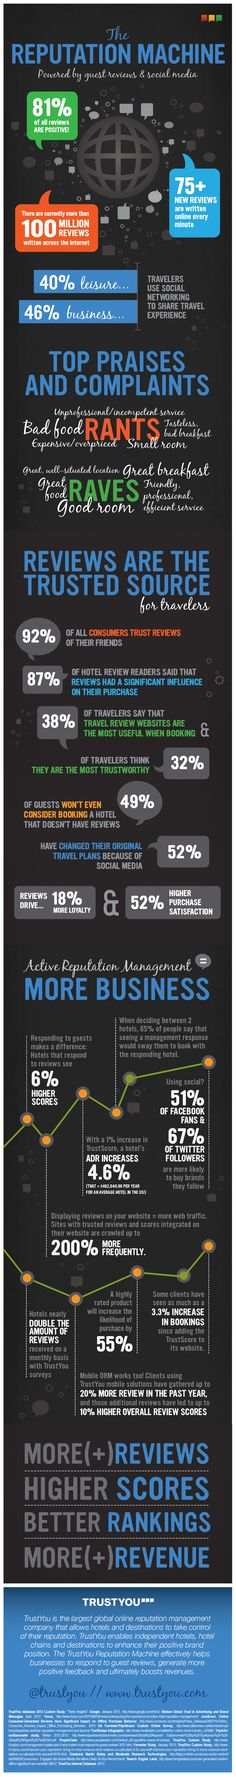 Online reputation management provider TrustYou has released an infographic that brings out various implications of reviews in travel industry.